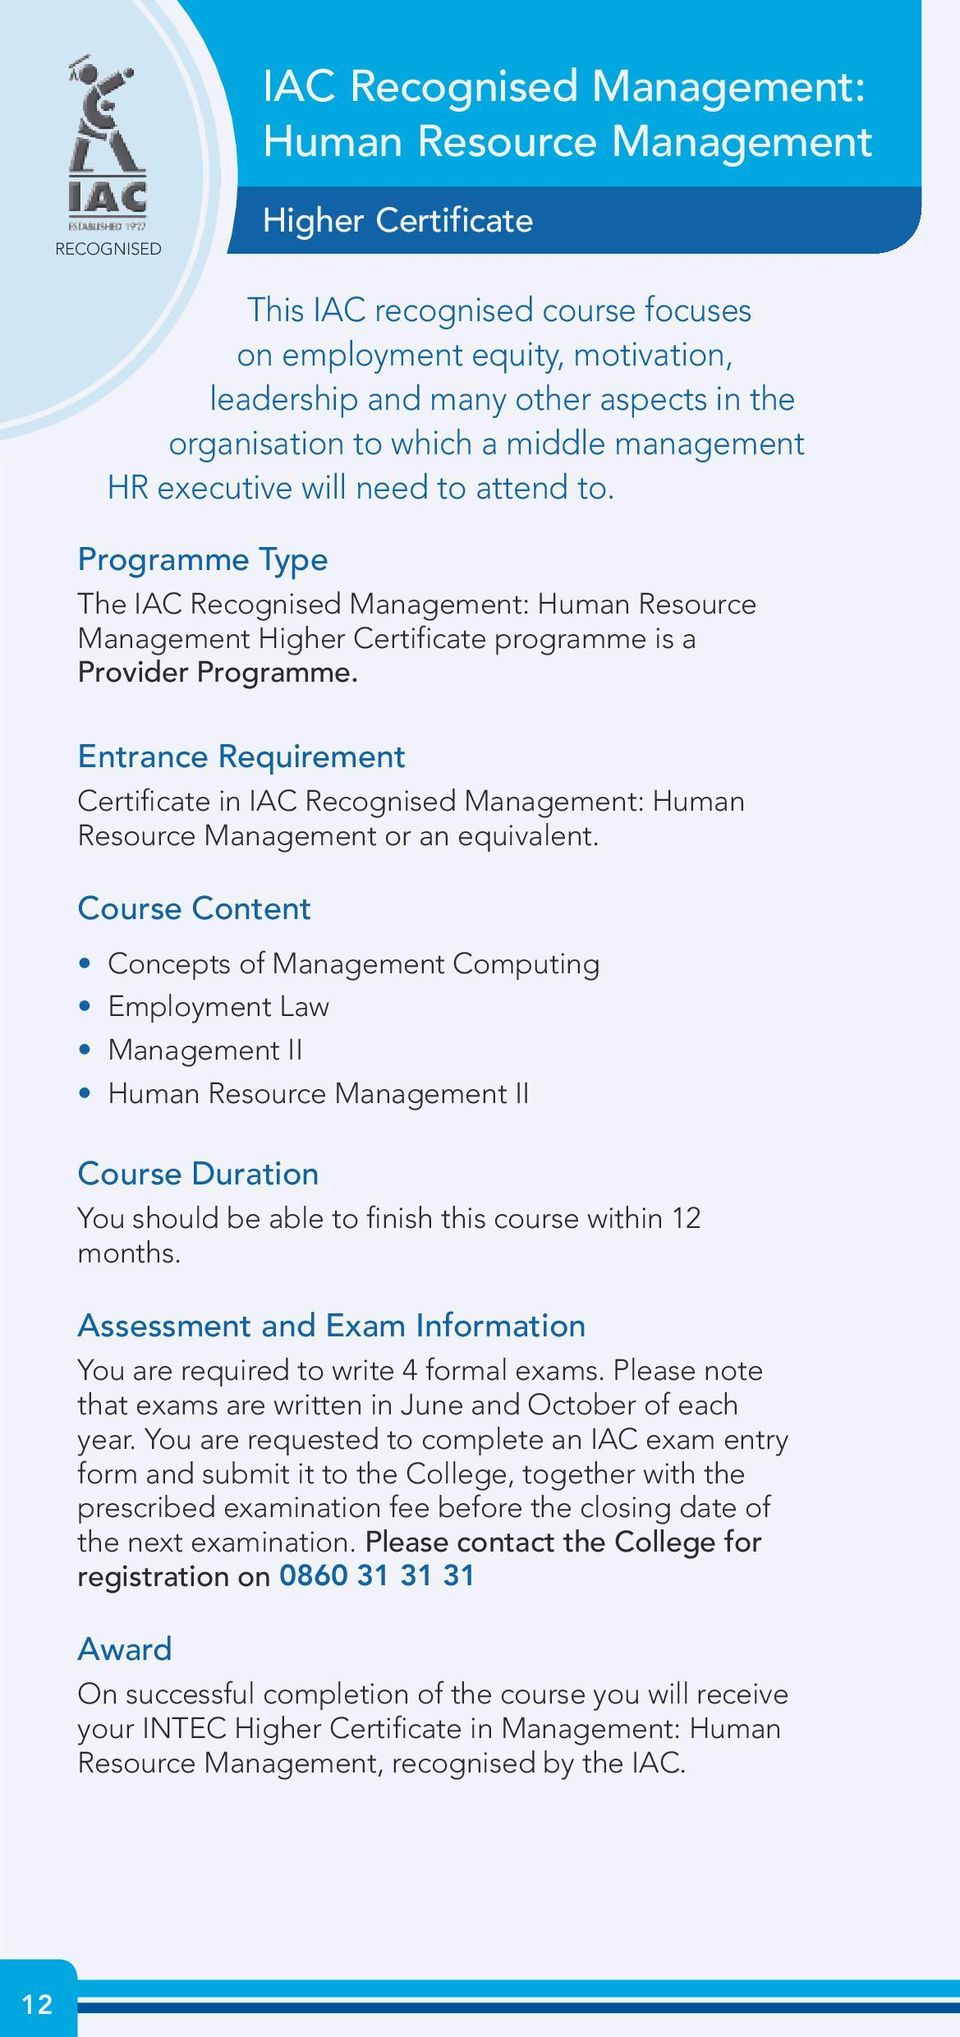 Entrance Requirement Certificate in IAC Recognised Management: Human Resource Management or an equivalent.